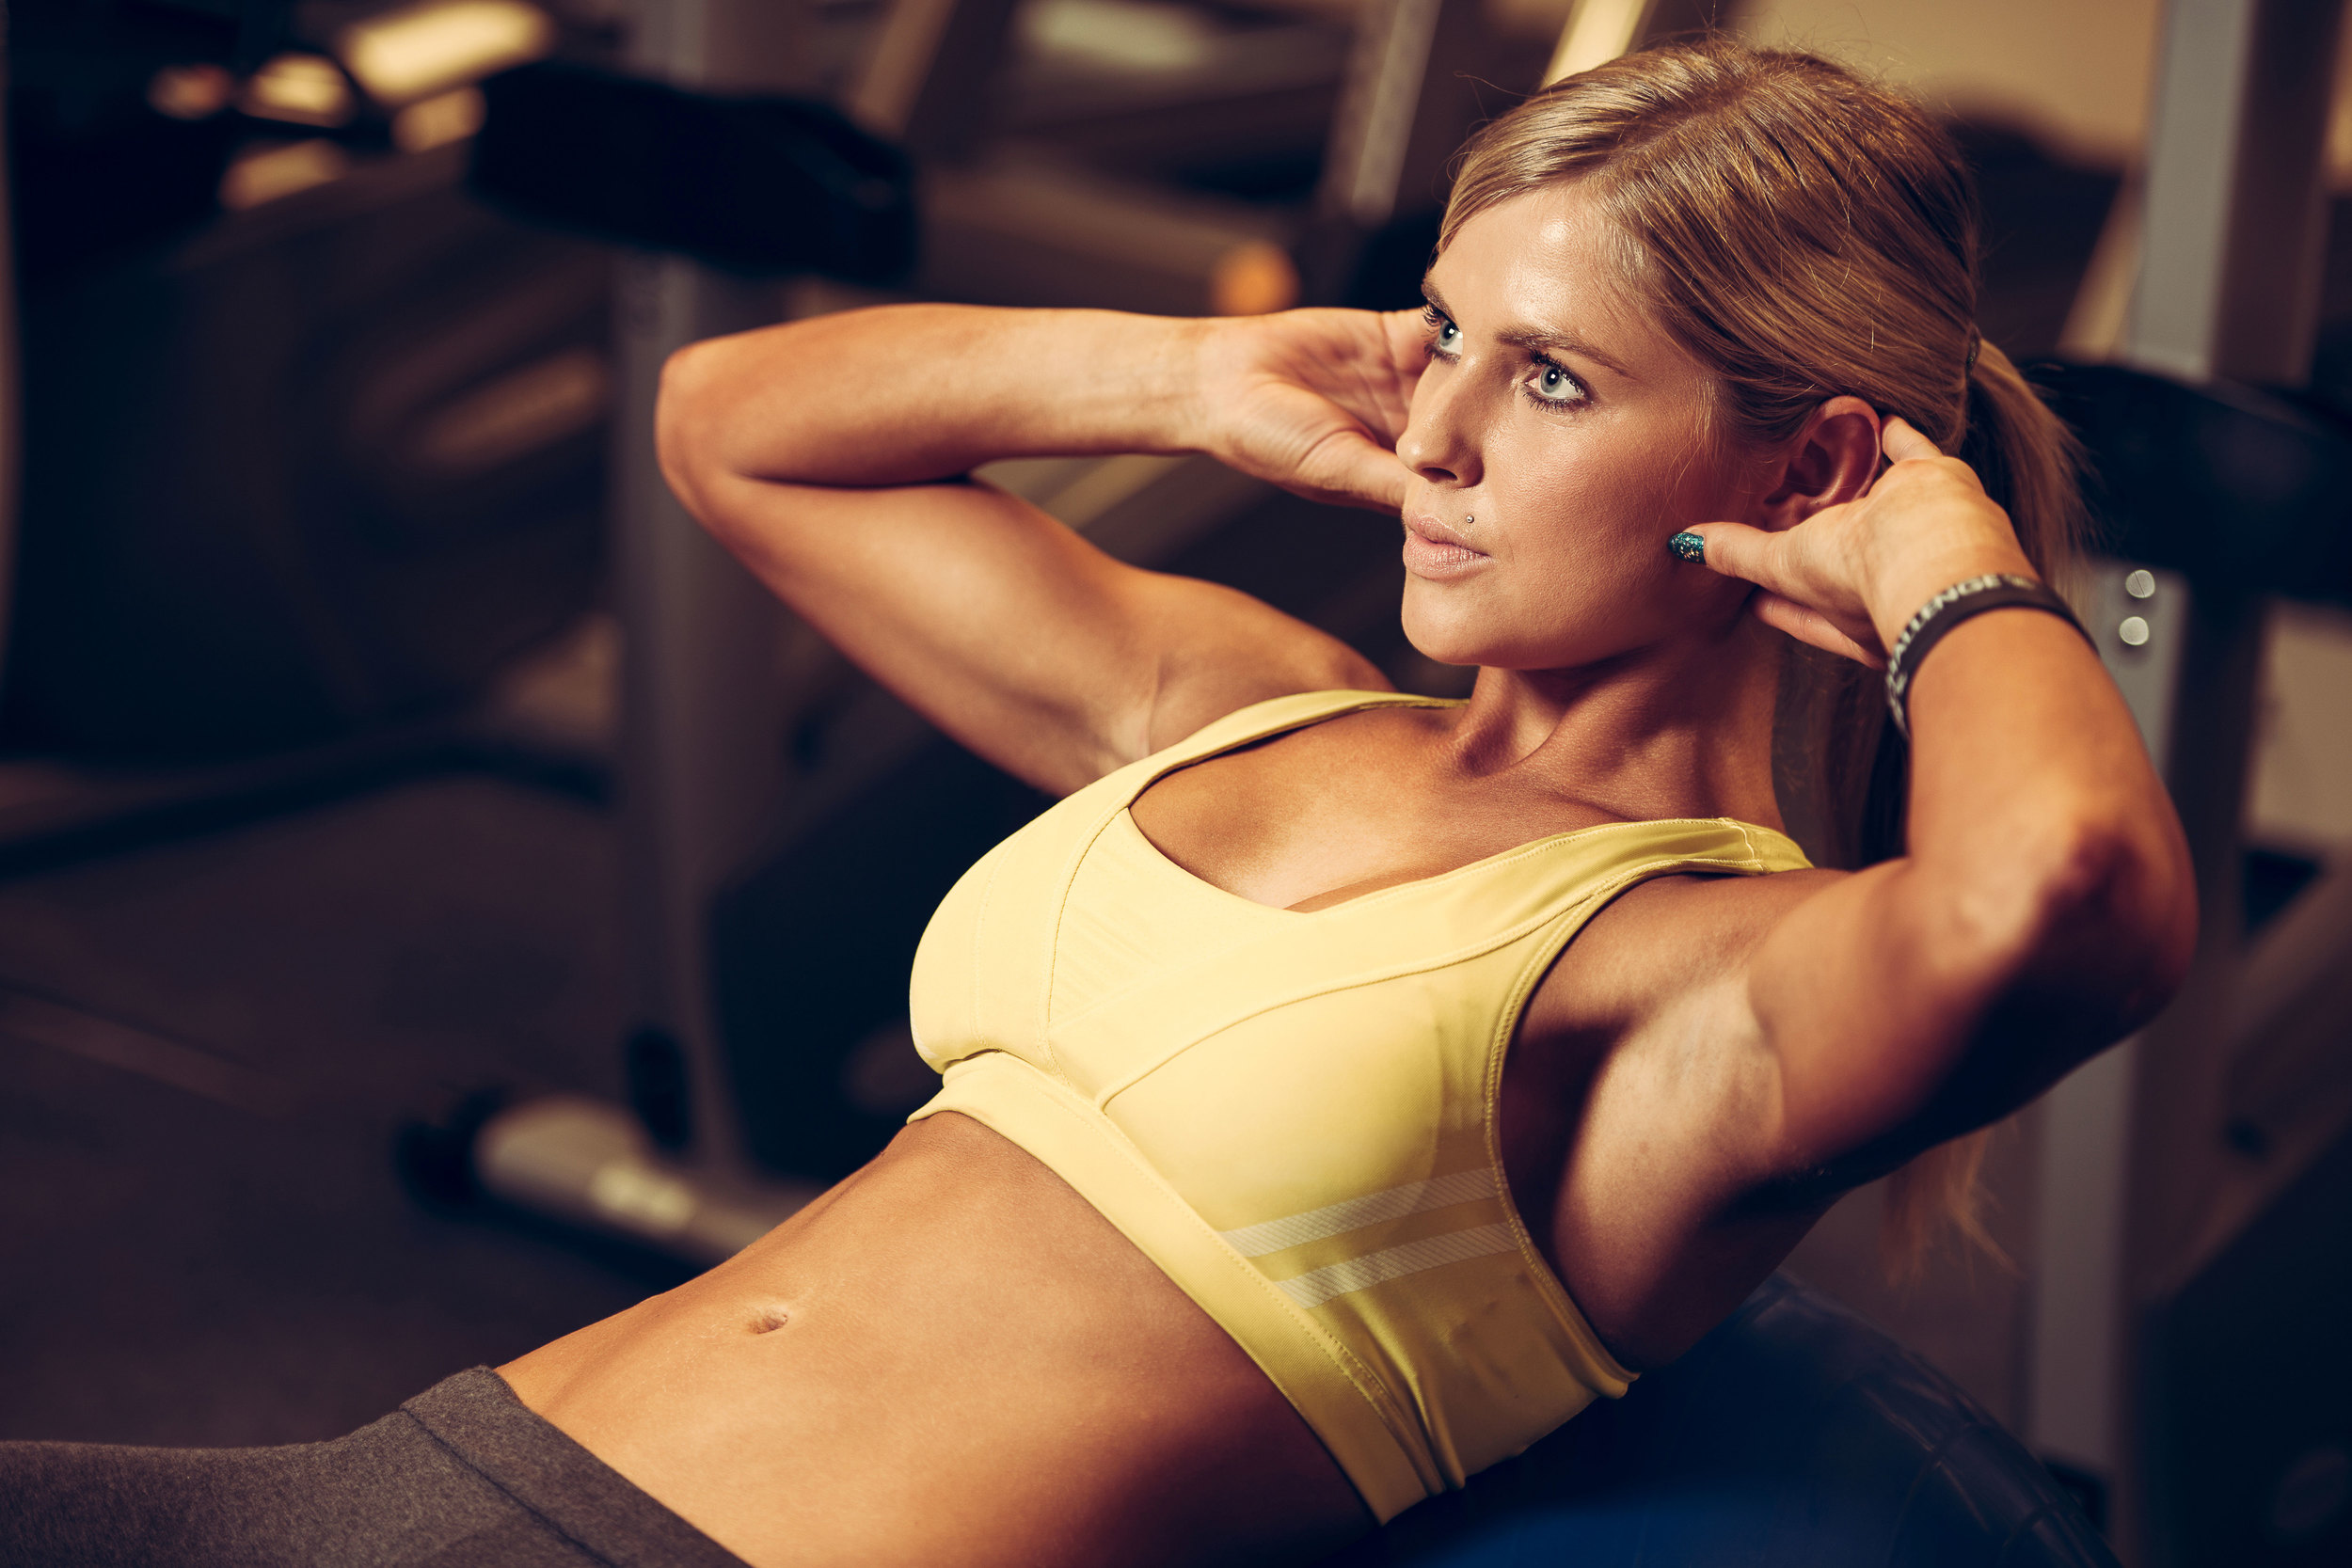 Ladies' RIPPED Strength Training     MAKE WOMAN   STRONG